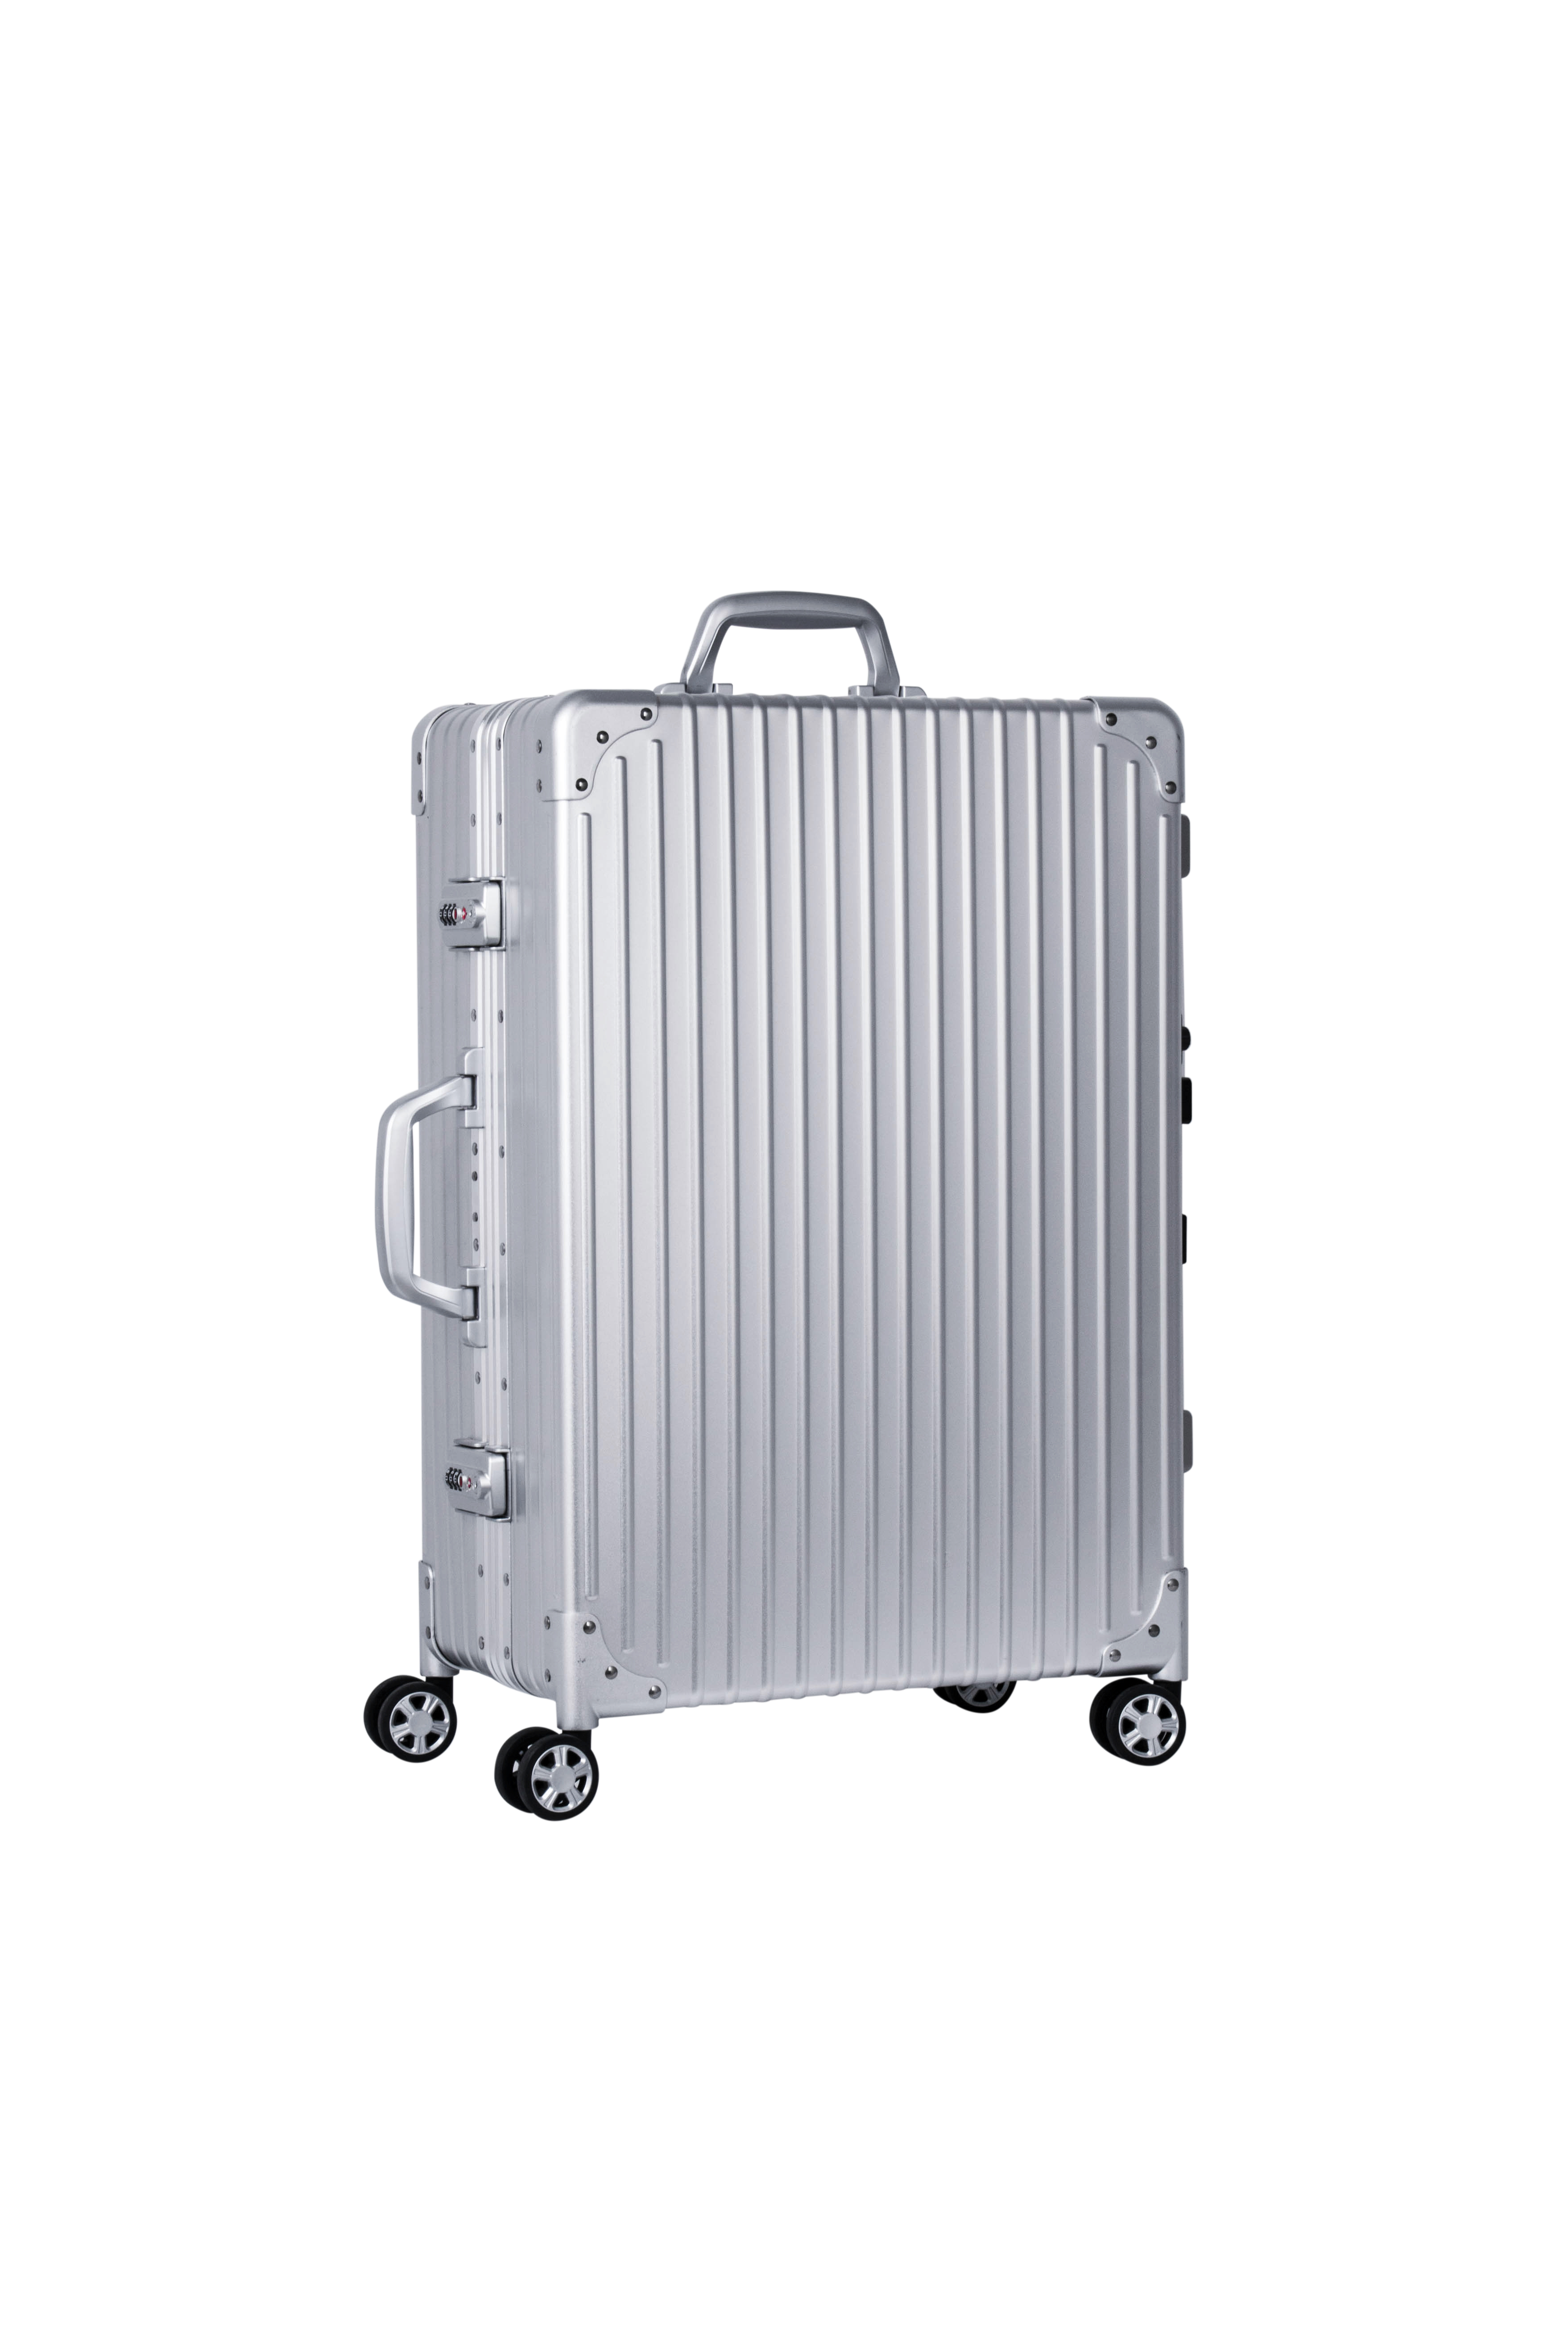 Latest-Fashion-Style-Luggage-Makeup-Trolley-with